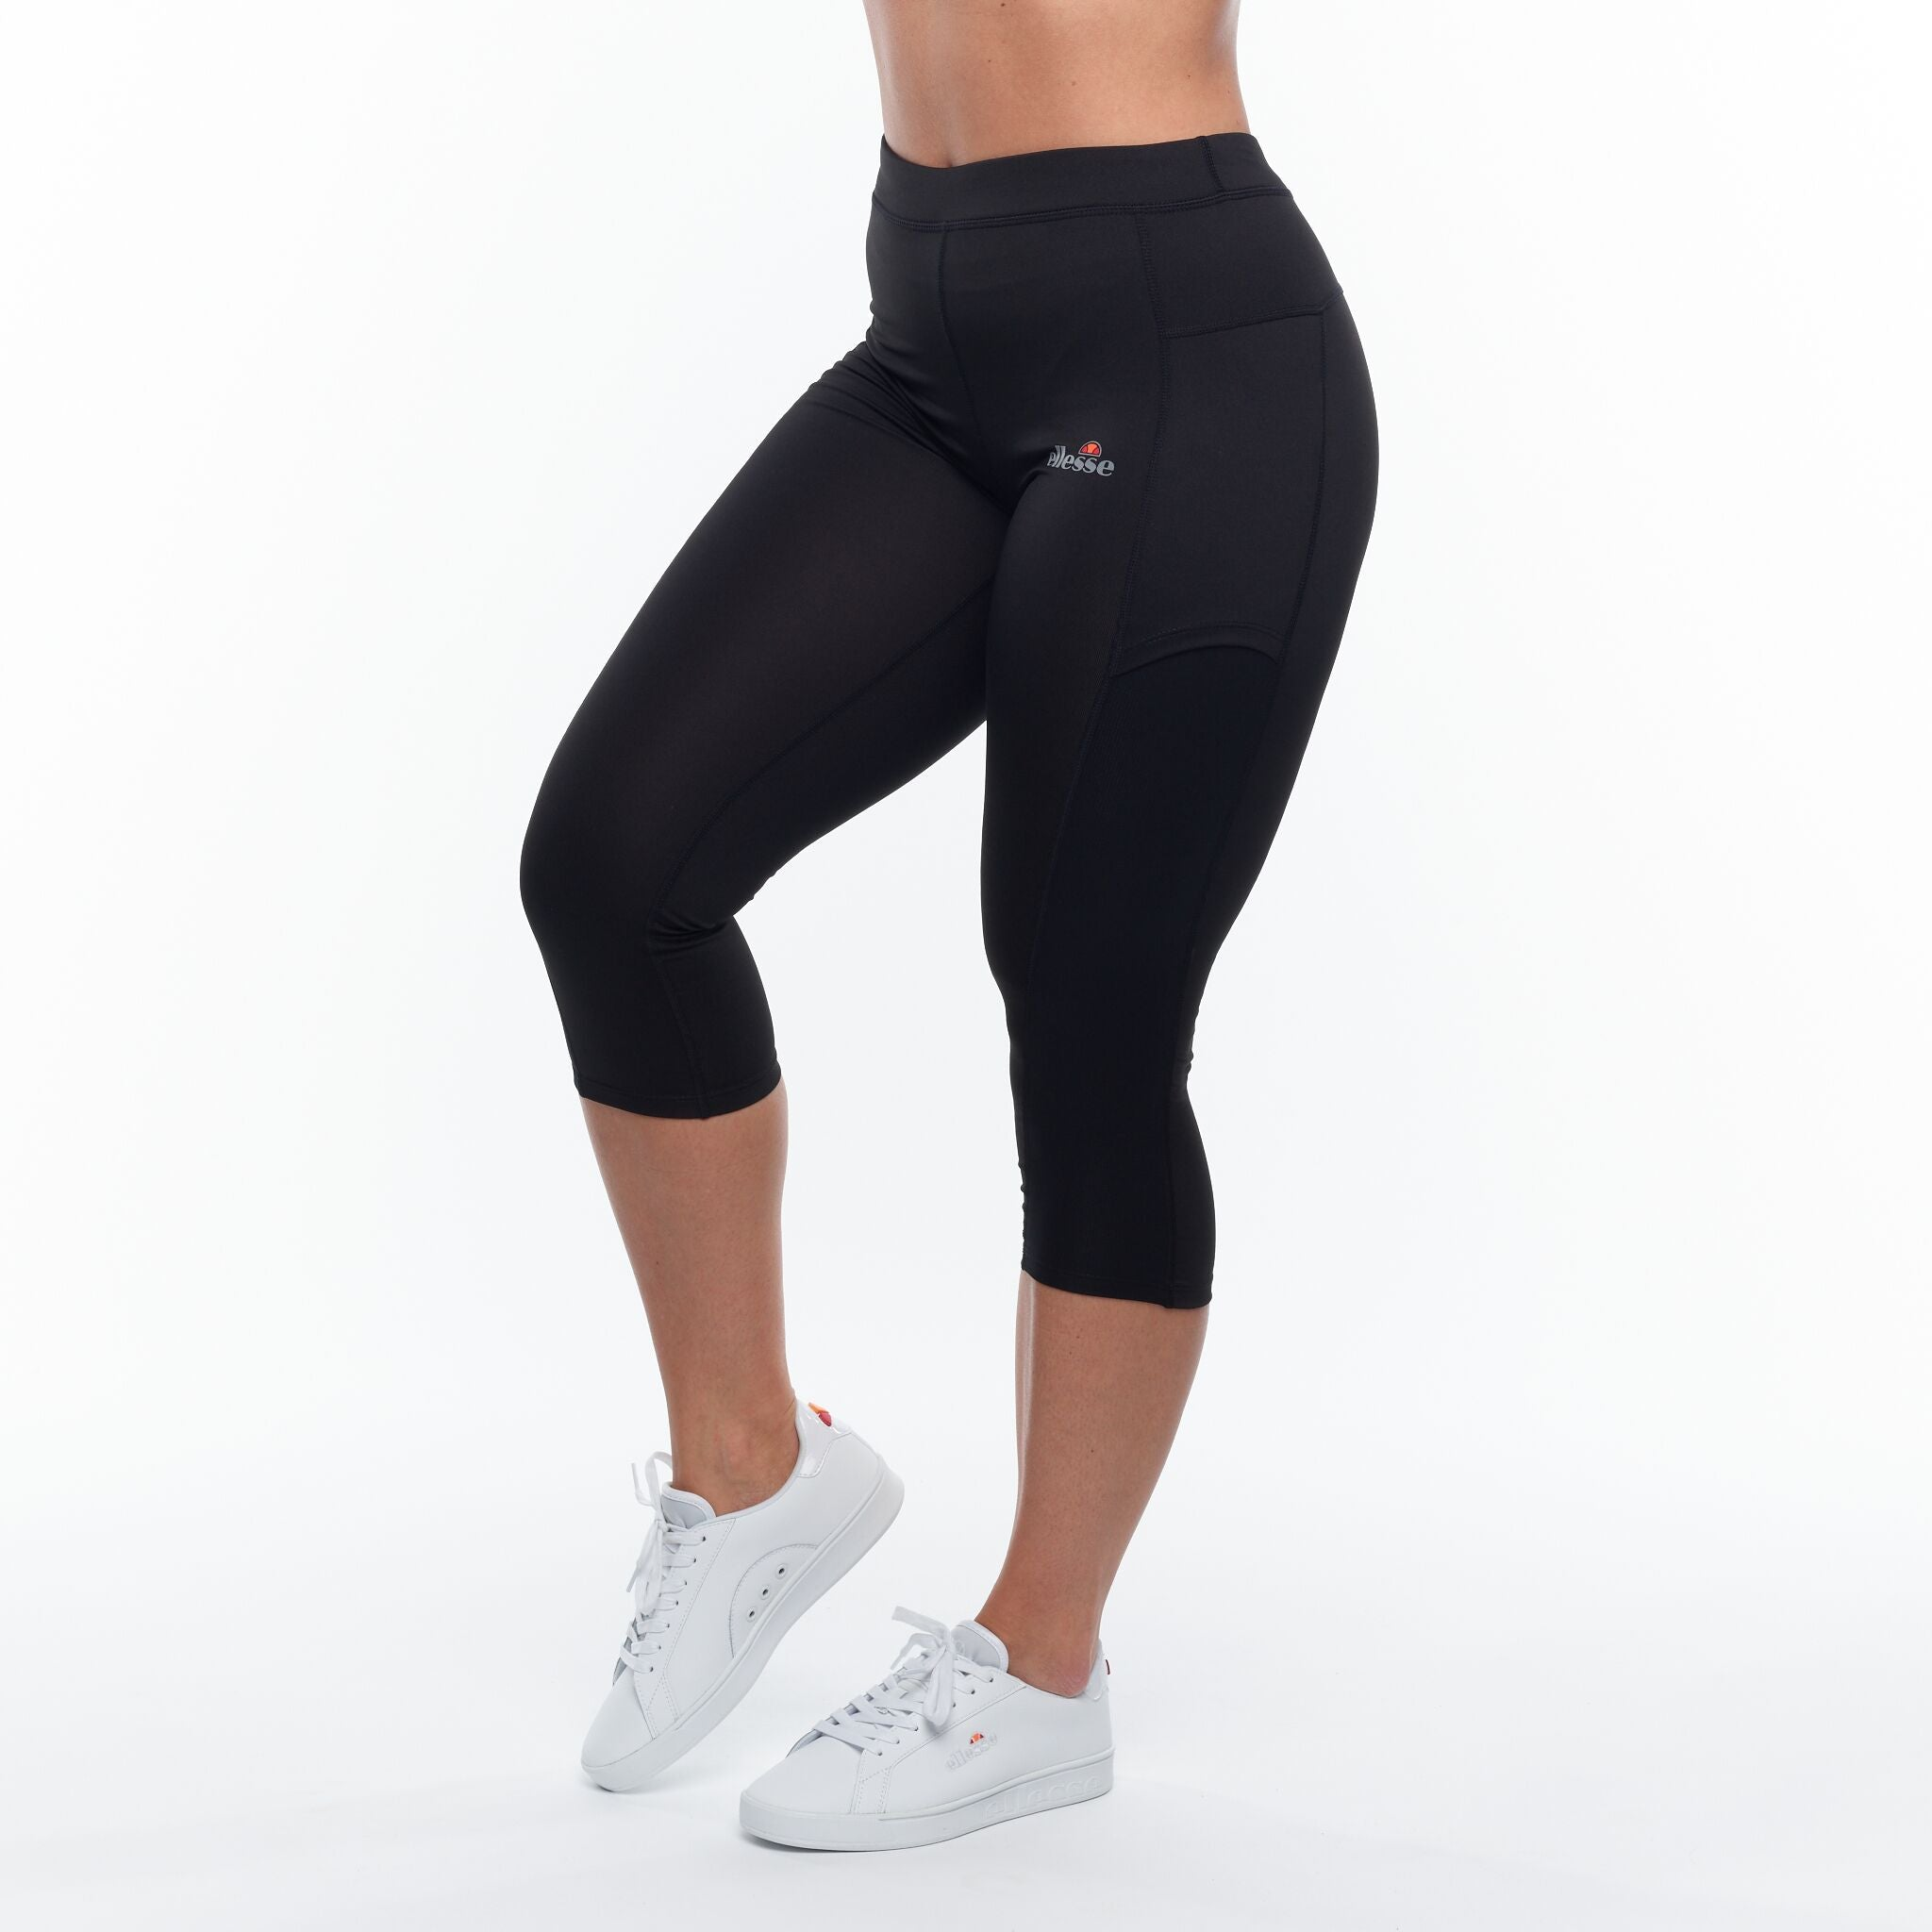 ELLESSE - SPECTRE CAPRI TIGHTS BLACK